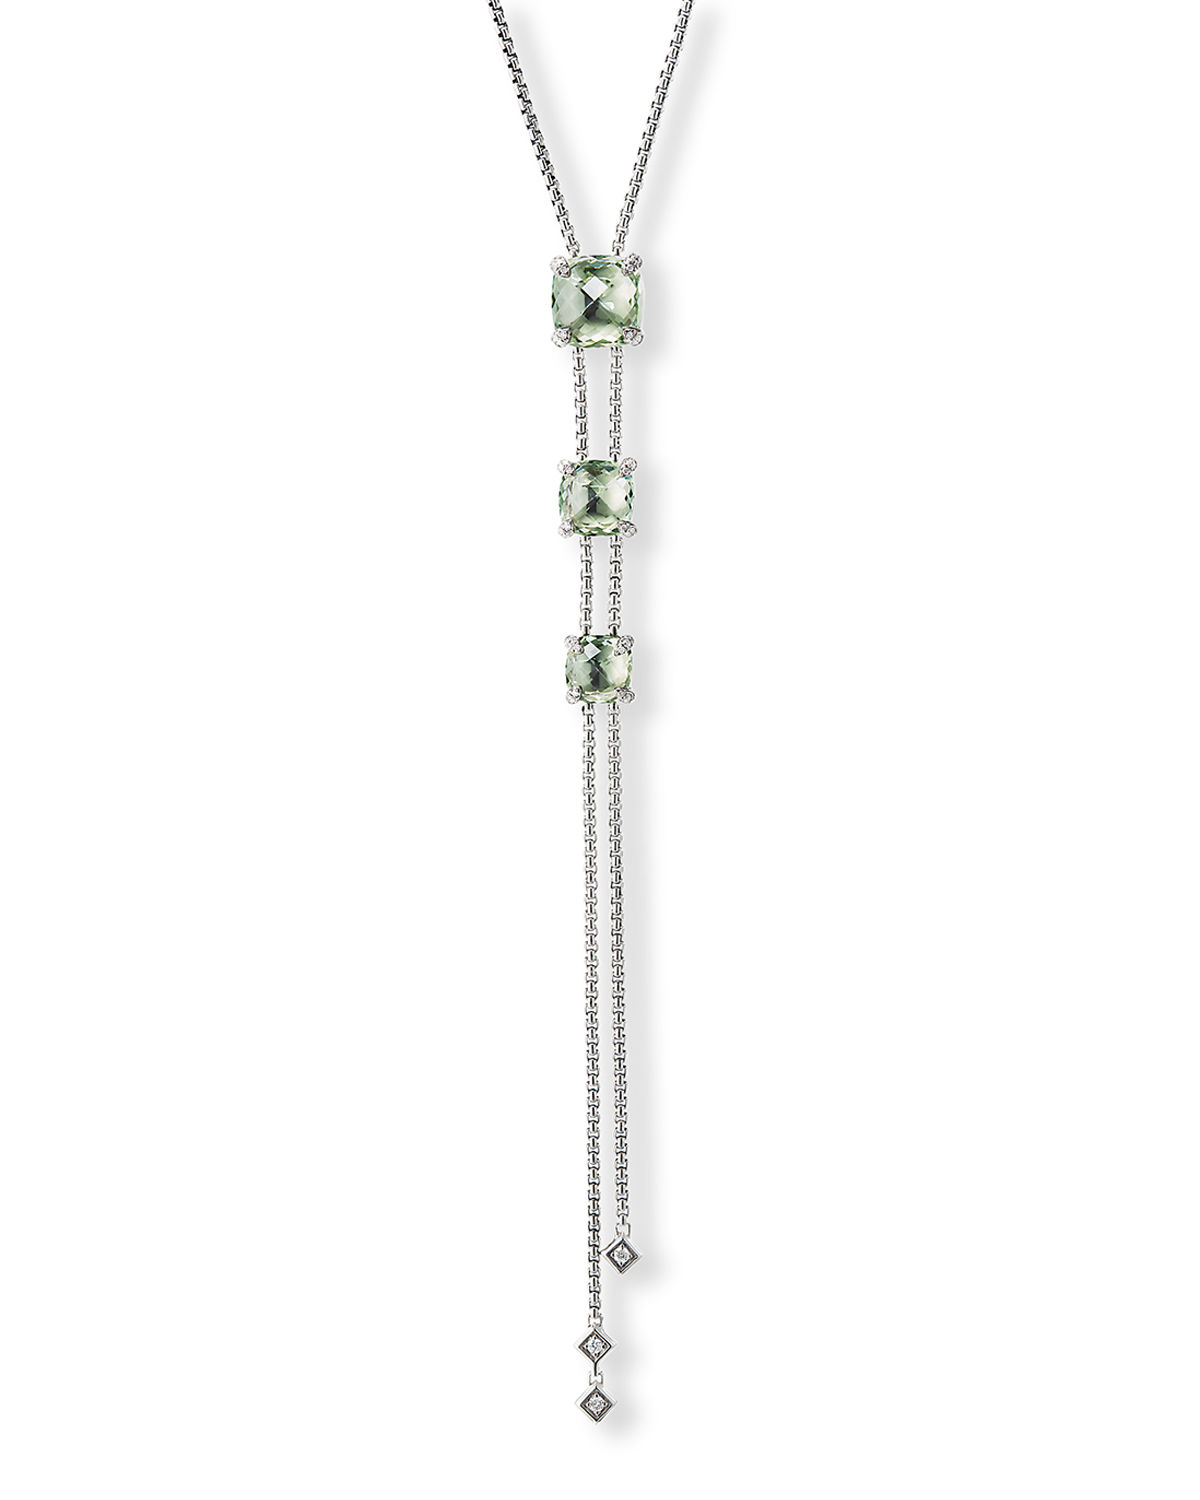 Chatelaine Faceted 18K Gold Lariat Necklace with Diamonds